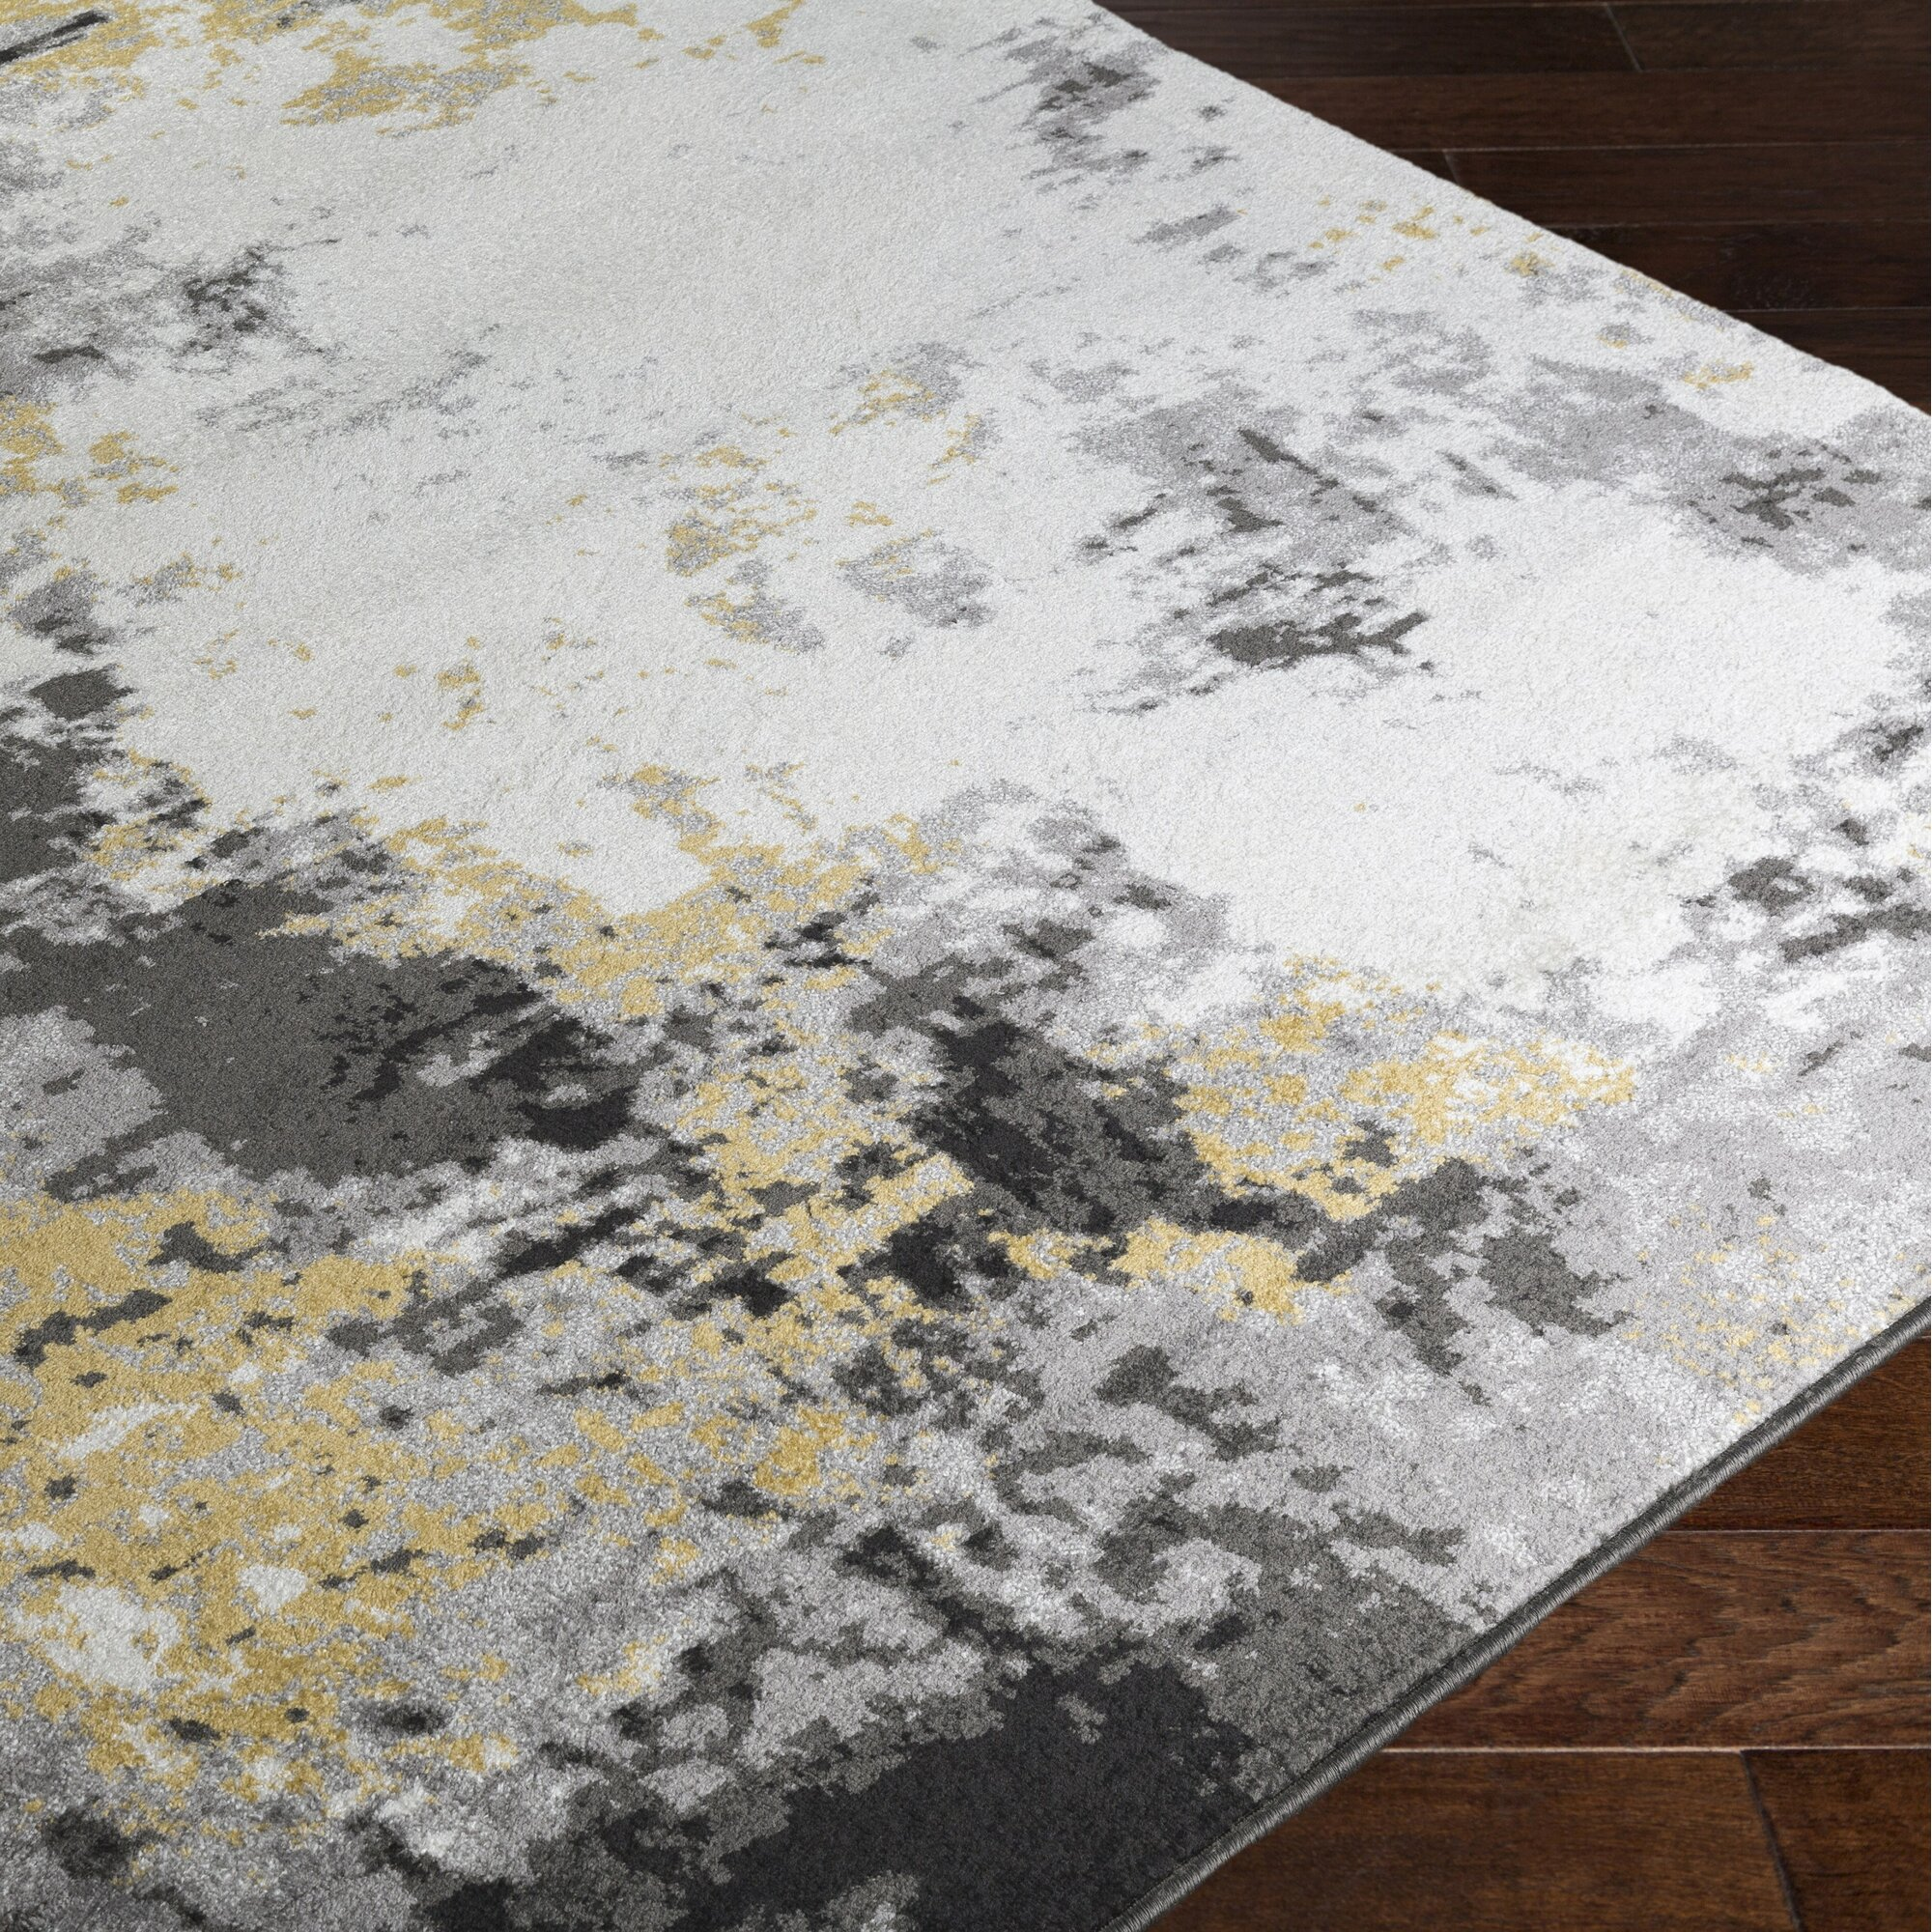 shuff charcoal mustard yellow gray area rug reviews allmodern. Black Bedroom Furniture Sets. Home Design Ideas